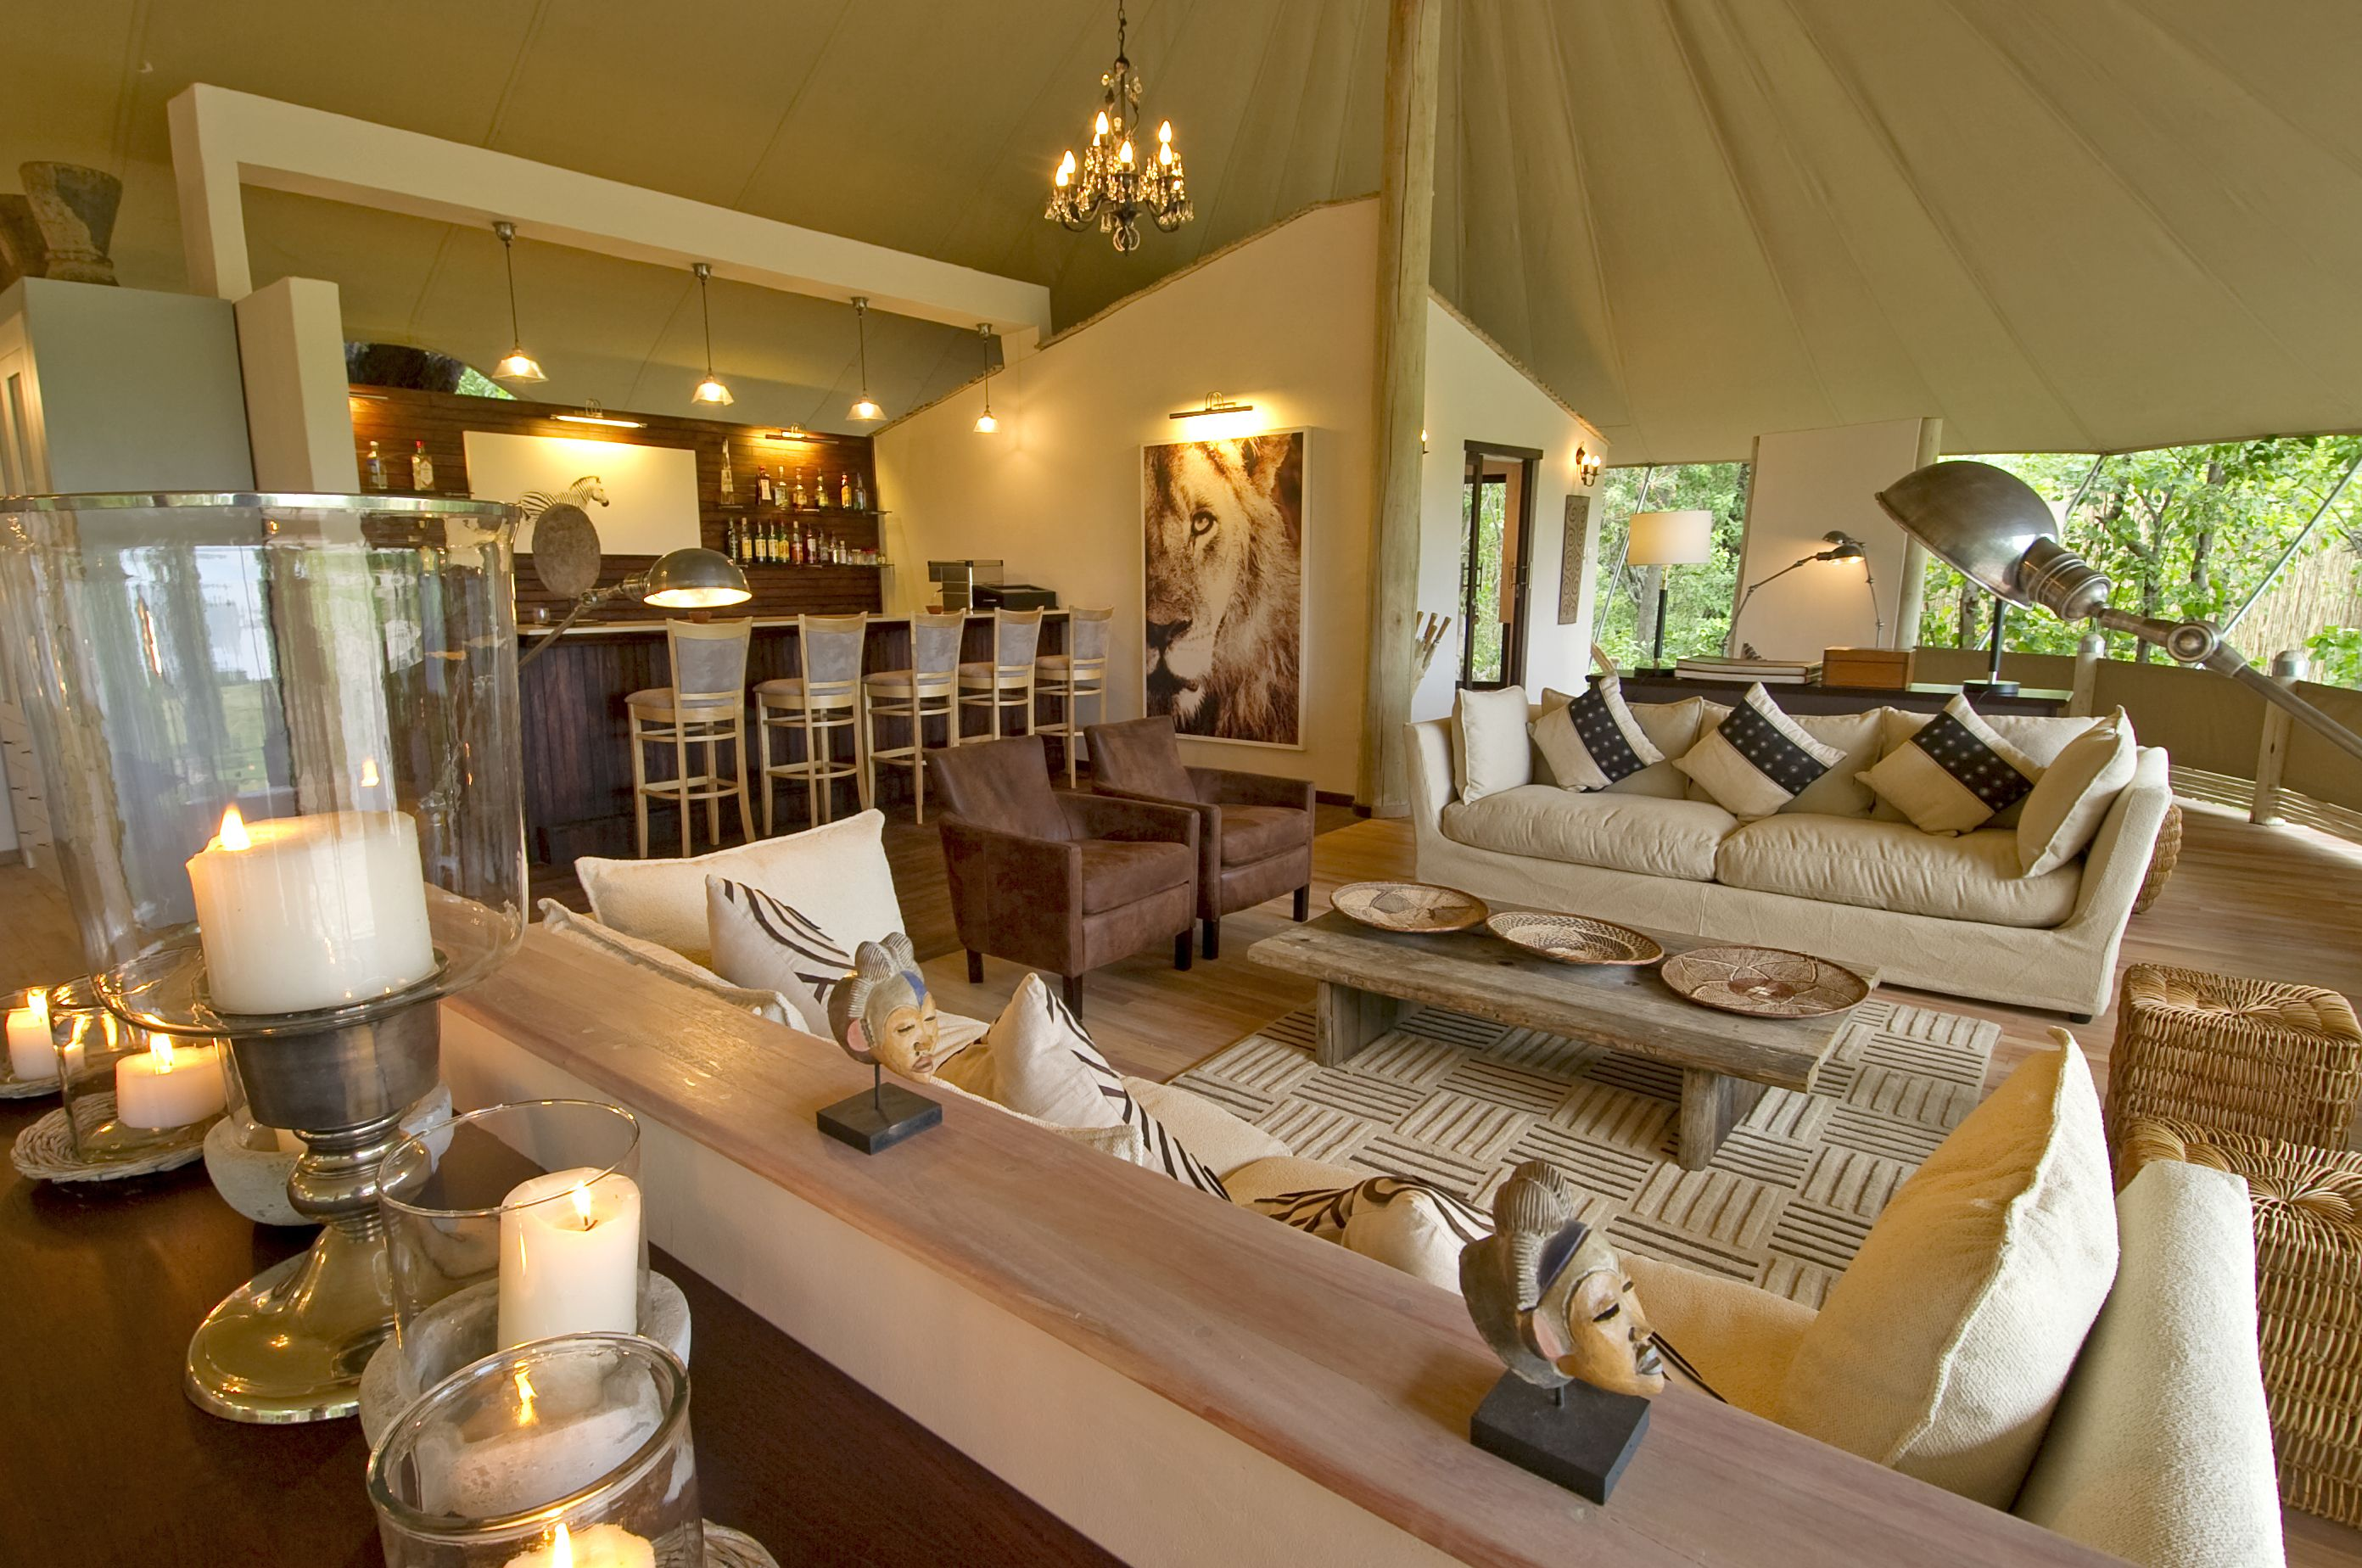 Decorate Your Home in African Safari Style - Photos - Condé Nast ...